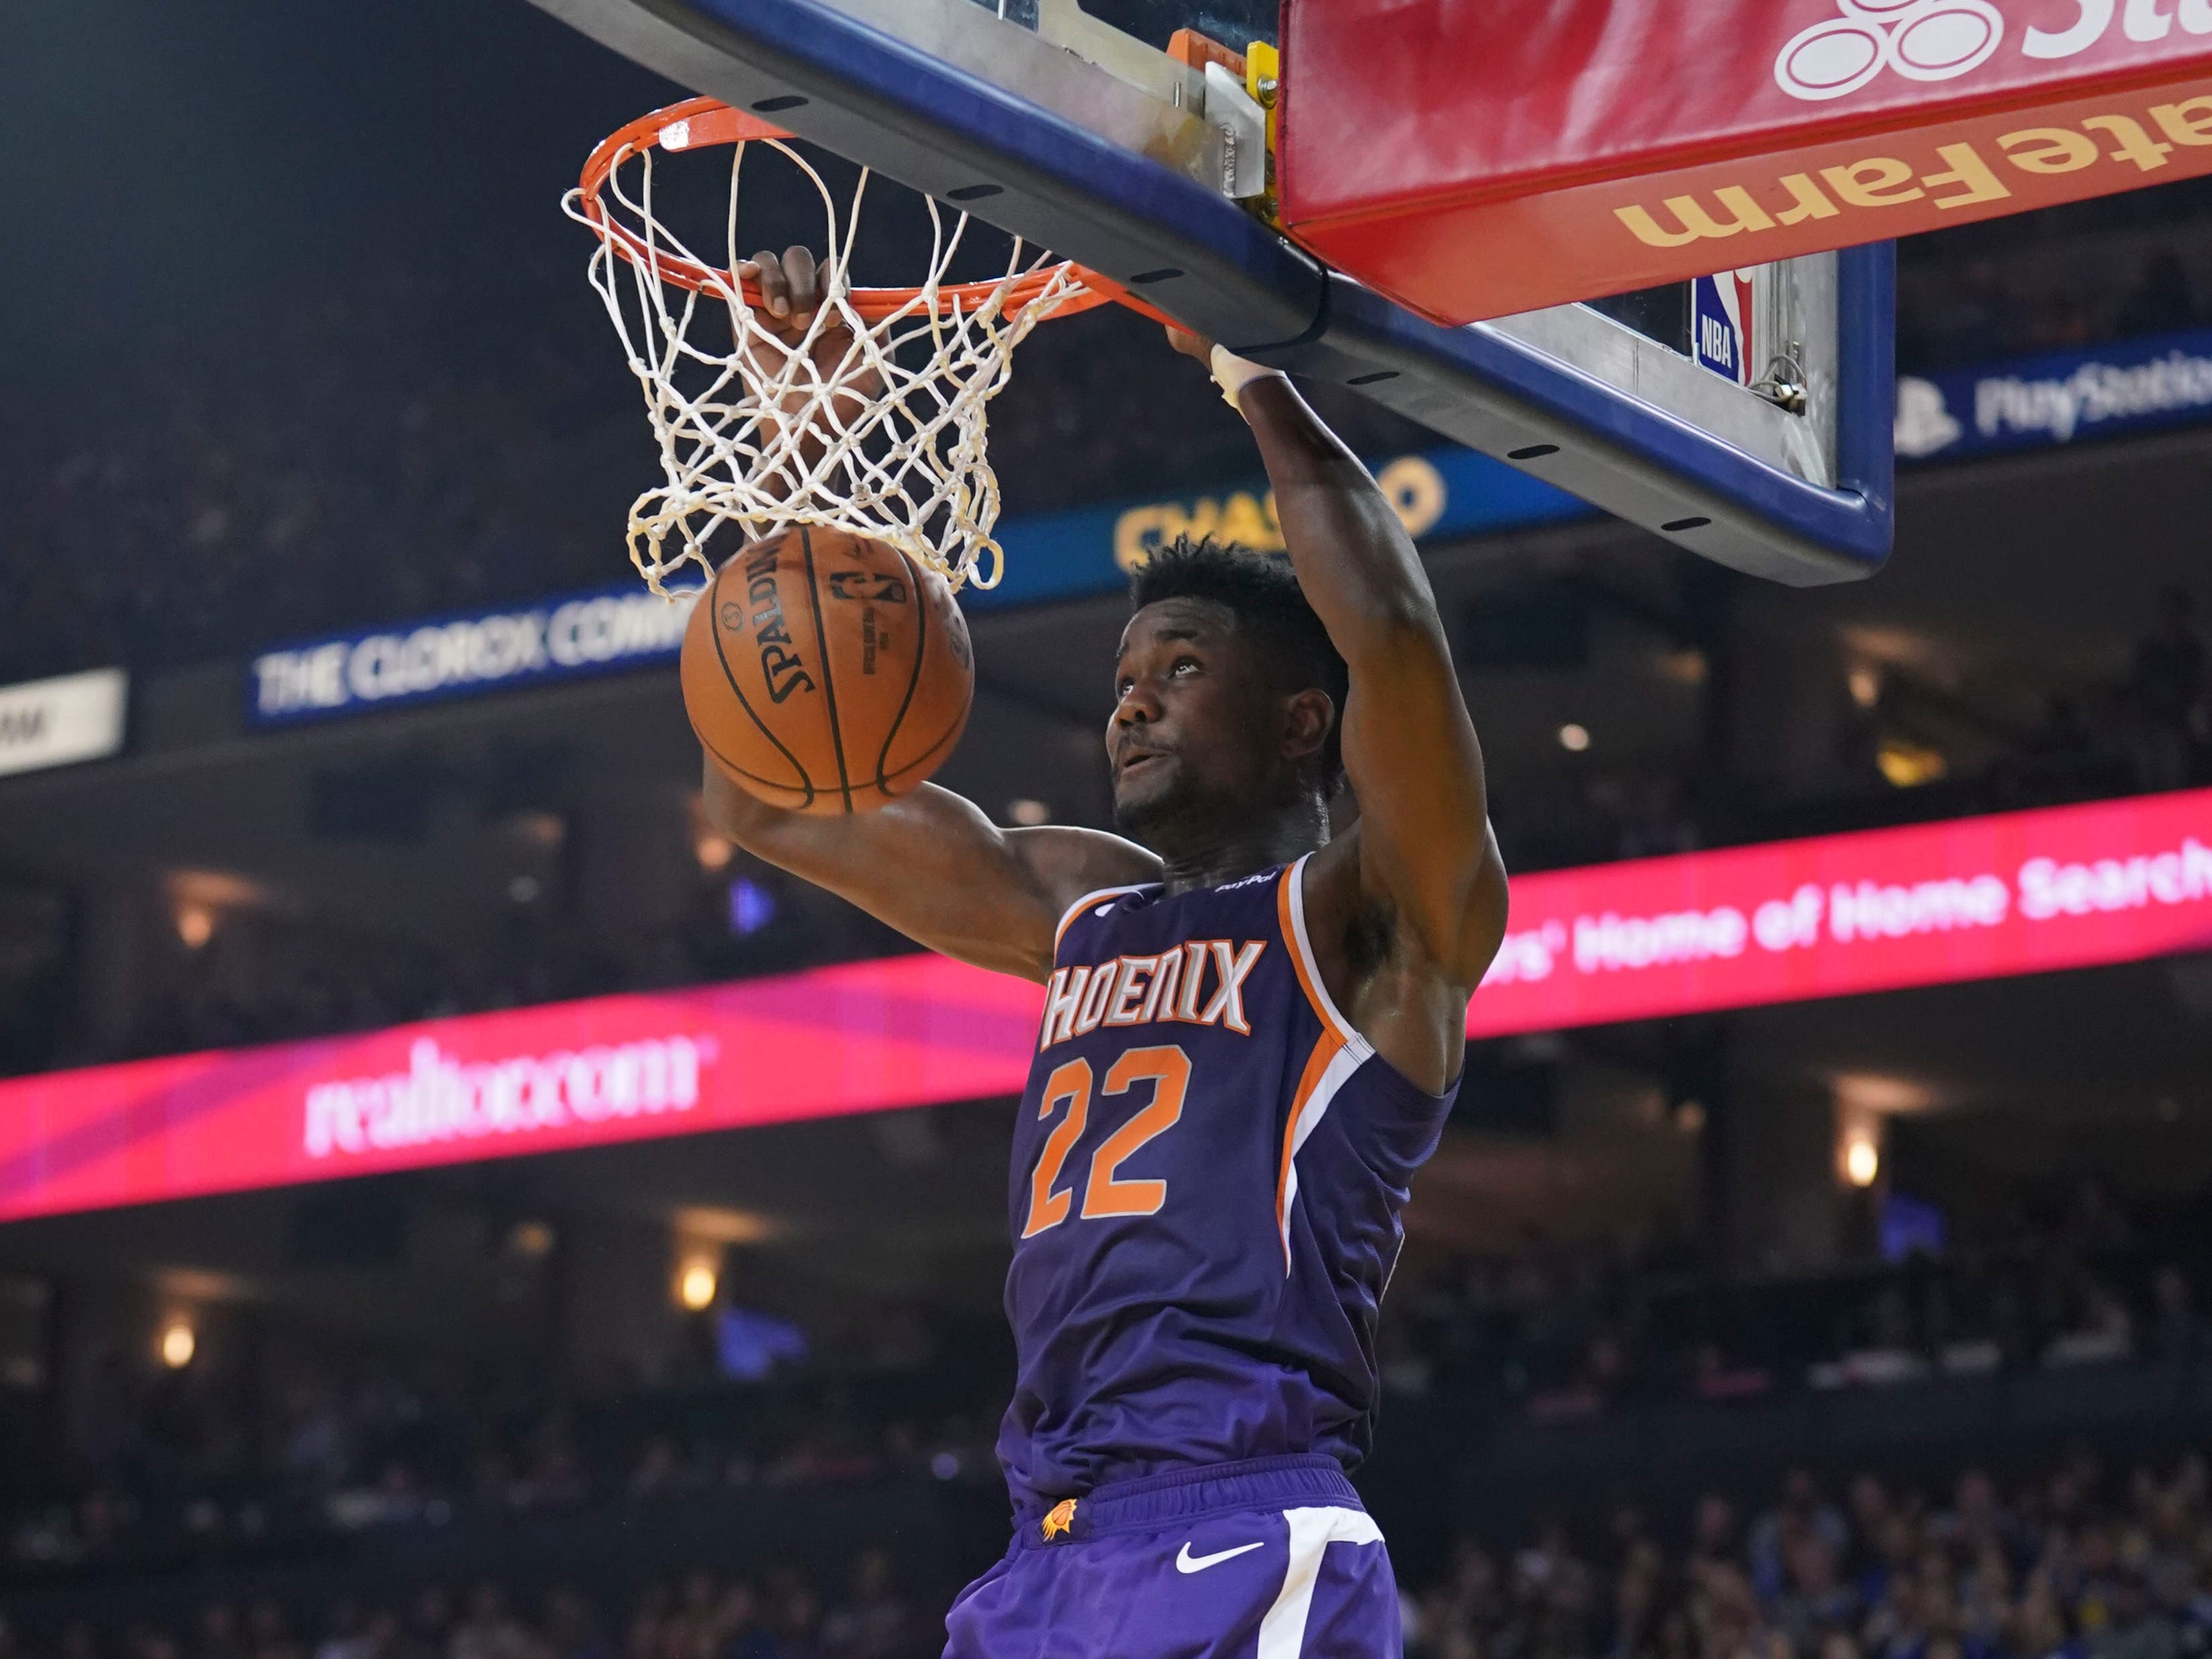 October 22, 2018; Oakland, CA, USA; Phoenix Suns center Deandre Ayton (22) dunks the basketball against the Golden State Warriors during the second quarter at Oracle Arena. Mandatory Credit: Kyle Terada-USA TODAY Sports